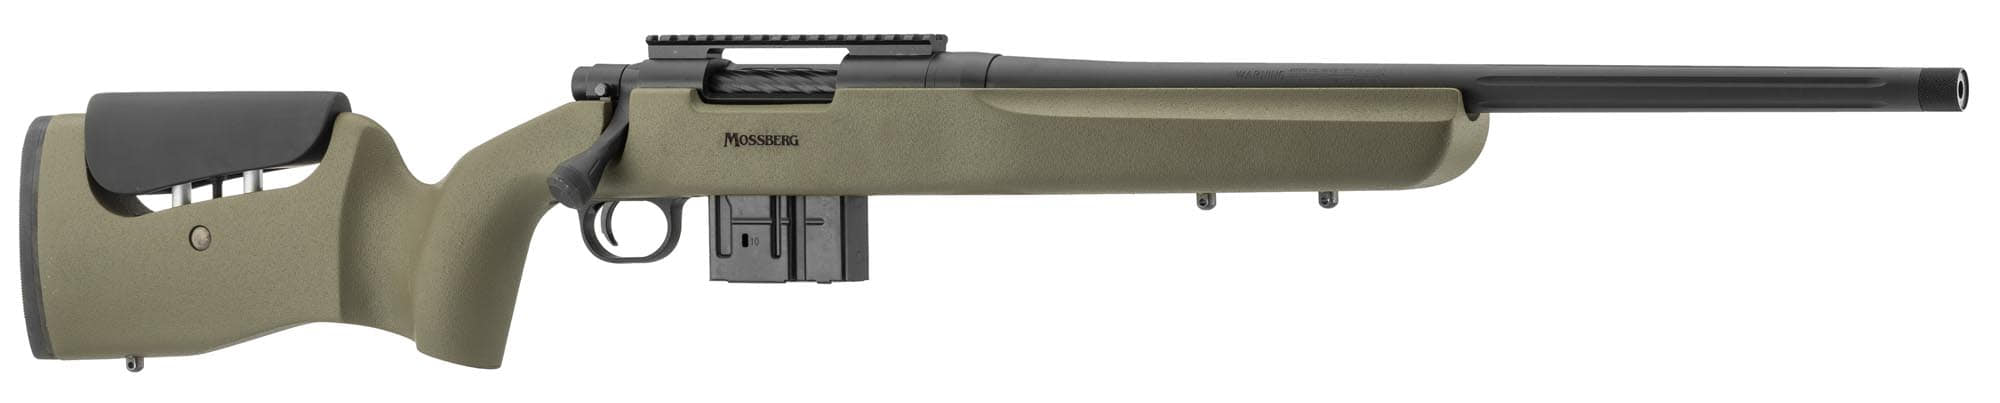 MO8010-11-MOSSBERG MVP SERIE LR TACTICAL BOLT ACTION 308W - MO8010